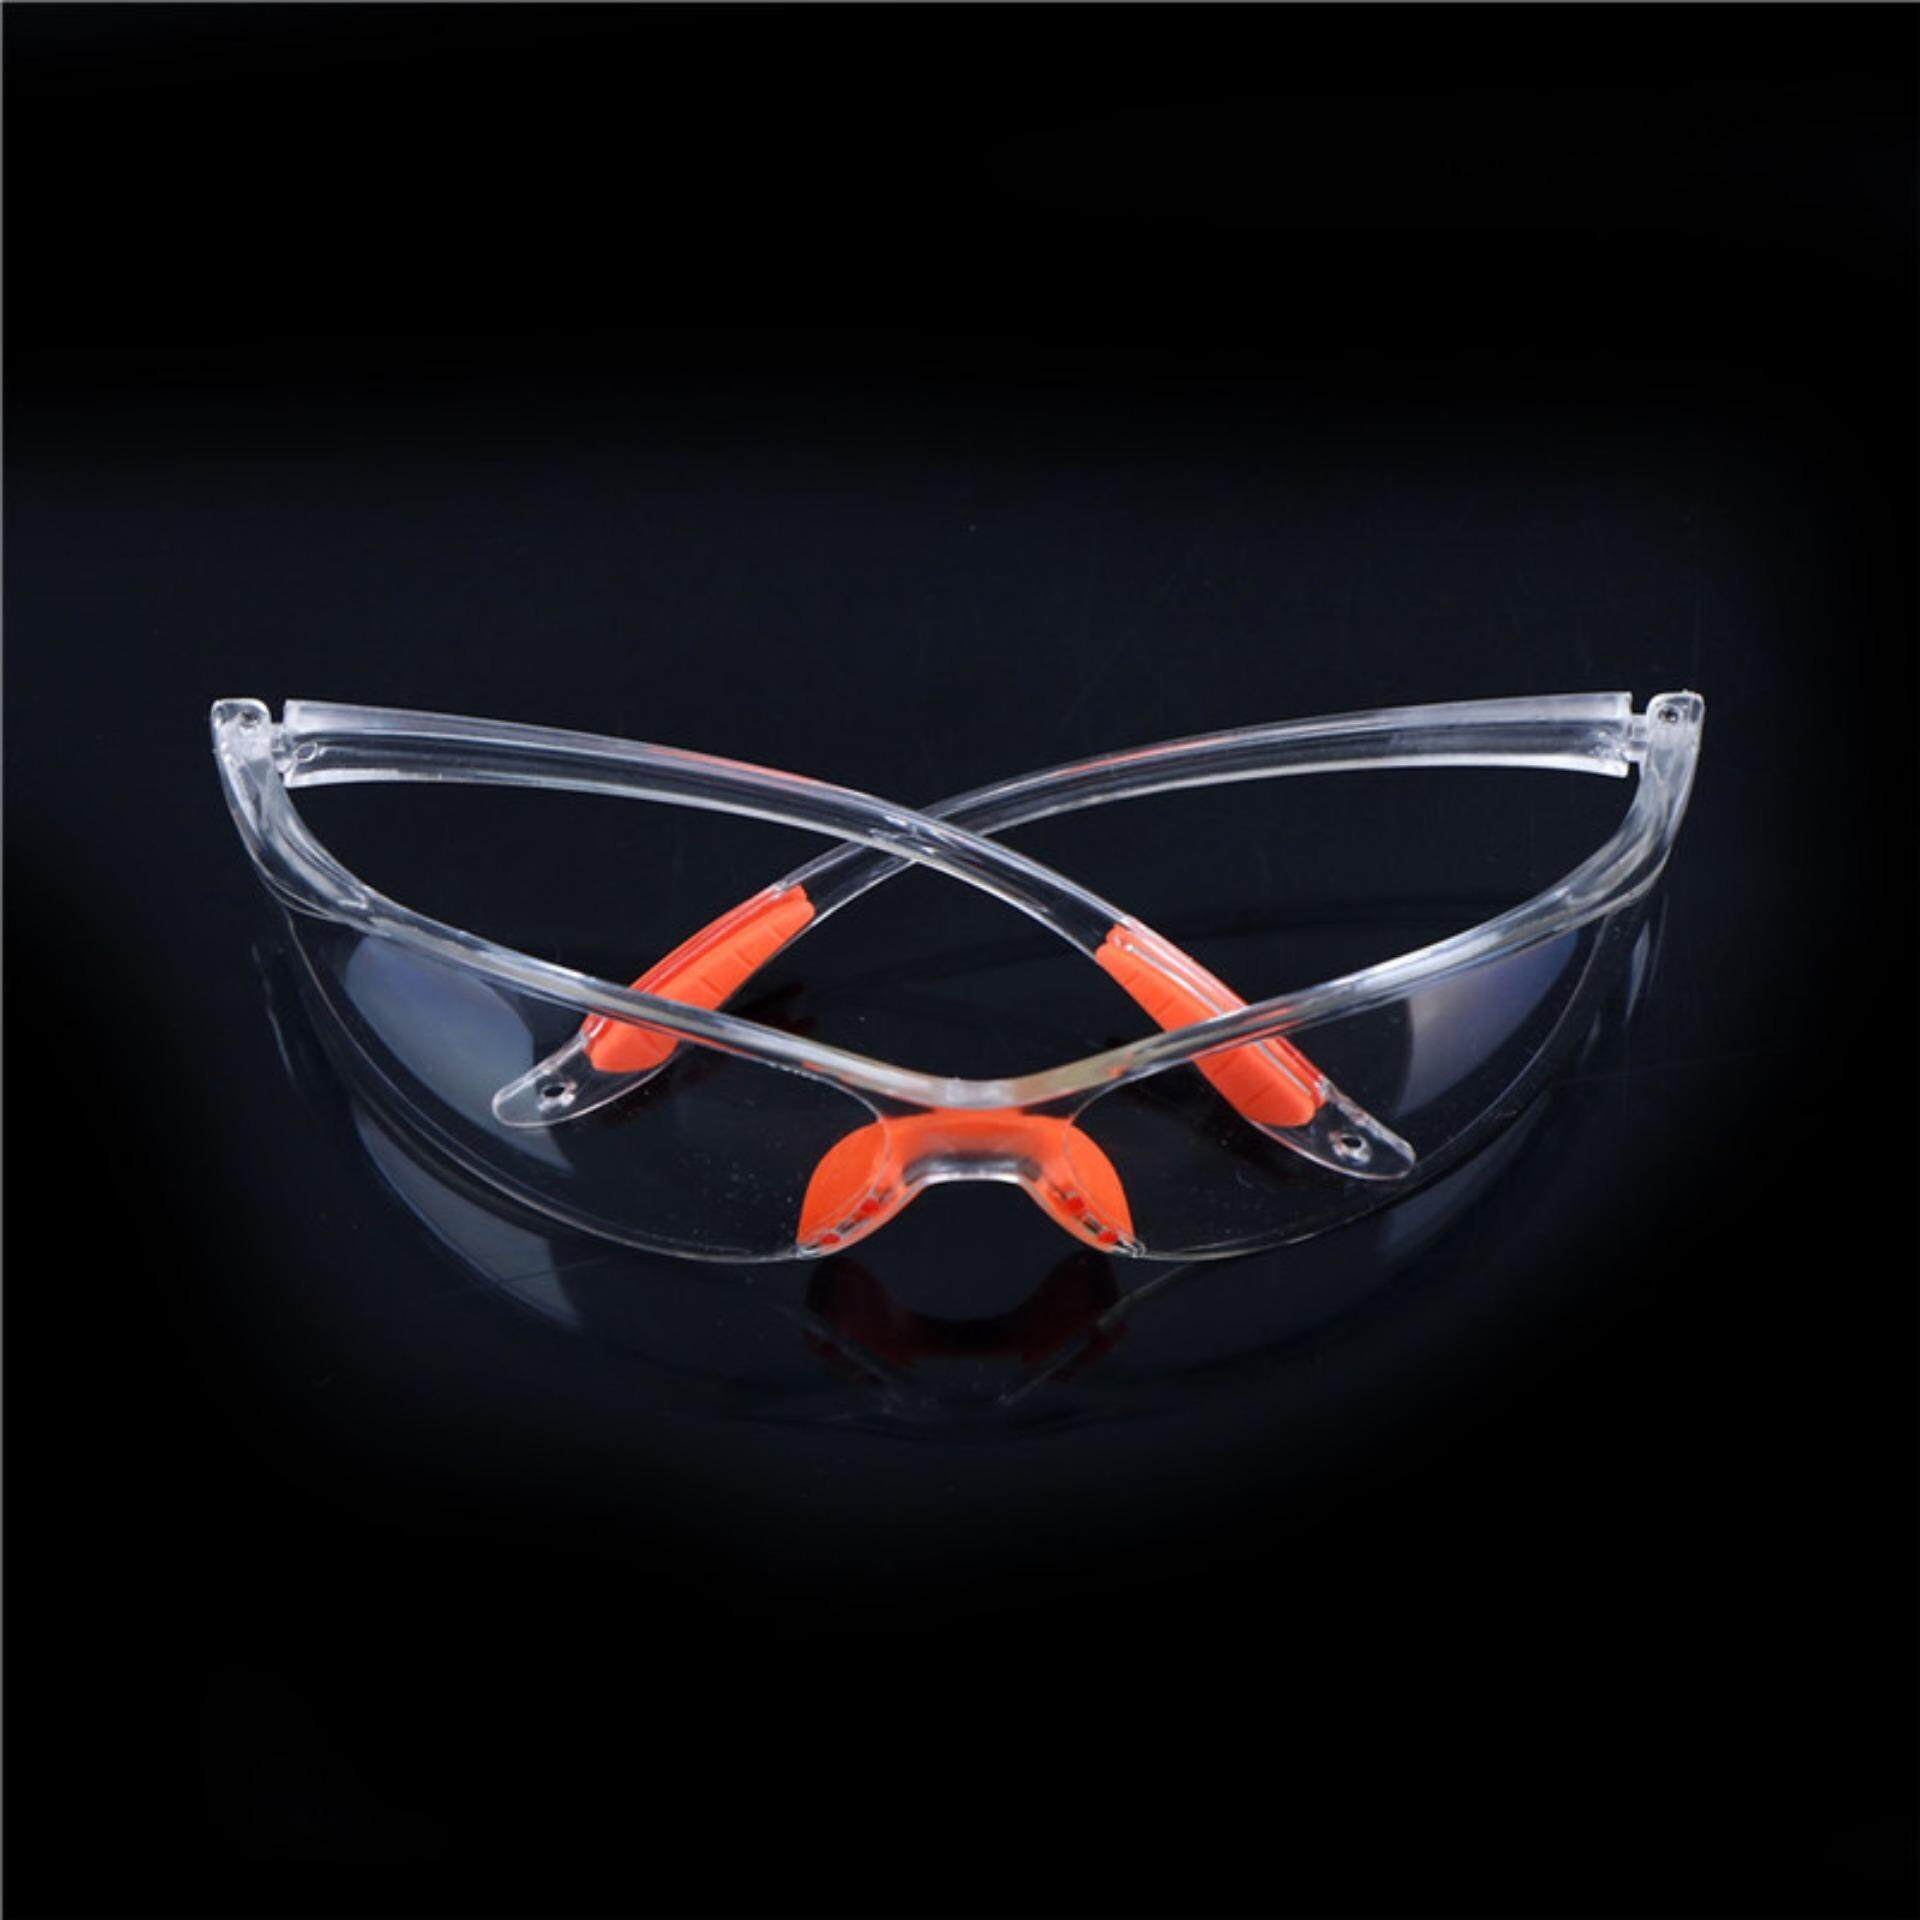 Veli shy Dustproof Security Goggles PC Eye Protector Safety Labor Glasses